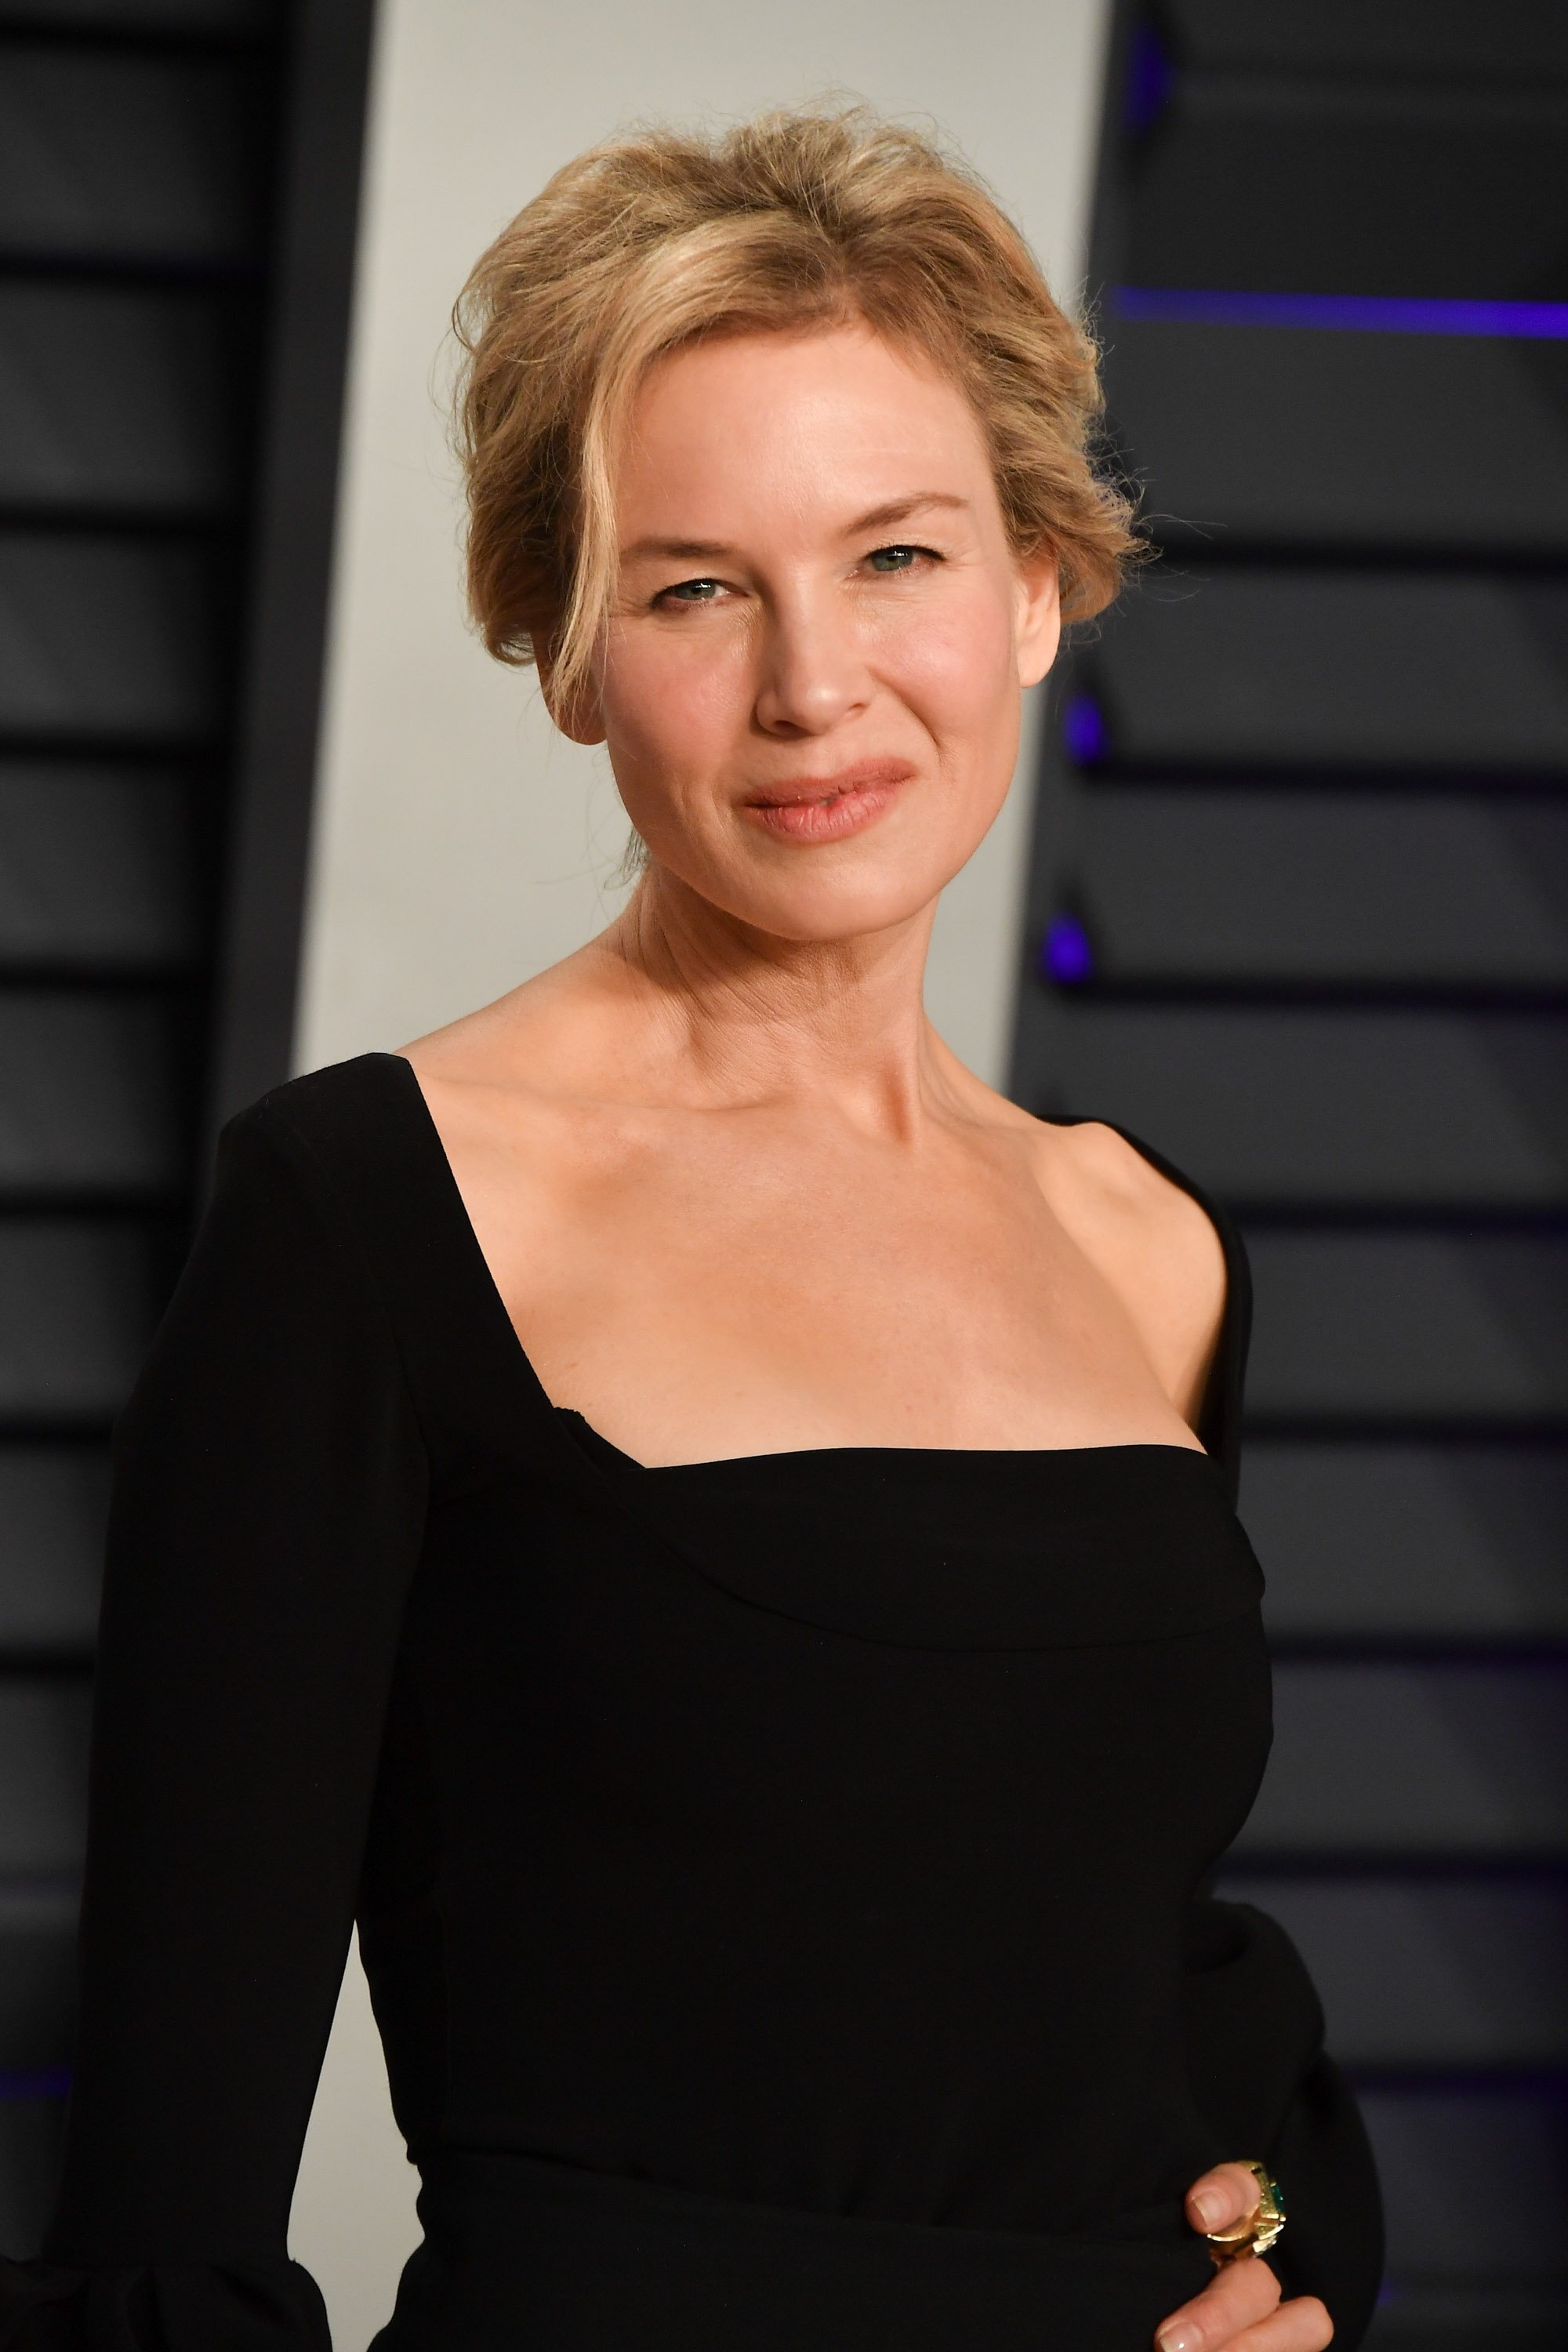 Renee Zellweger attends the 2019 Vanity Fair Oscar Party hosted by Radhika Jones at Wallis Annenberg Center for the Performing Arts on February 24, 2019 | Photo: Getty Images.